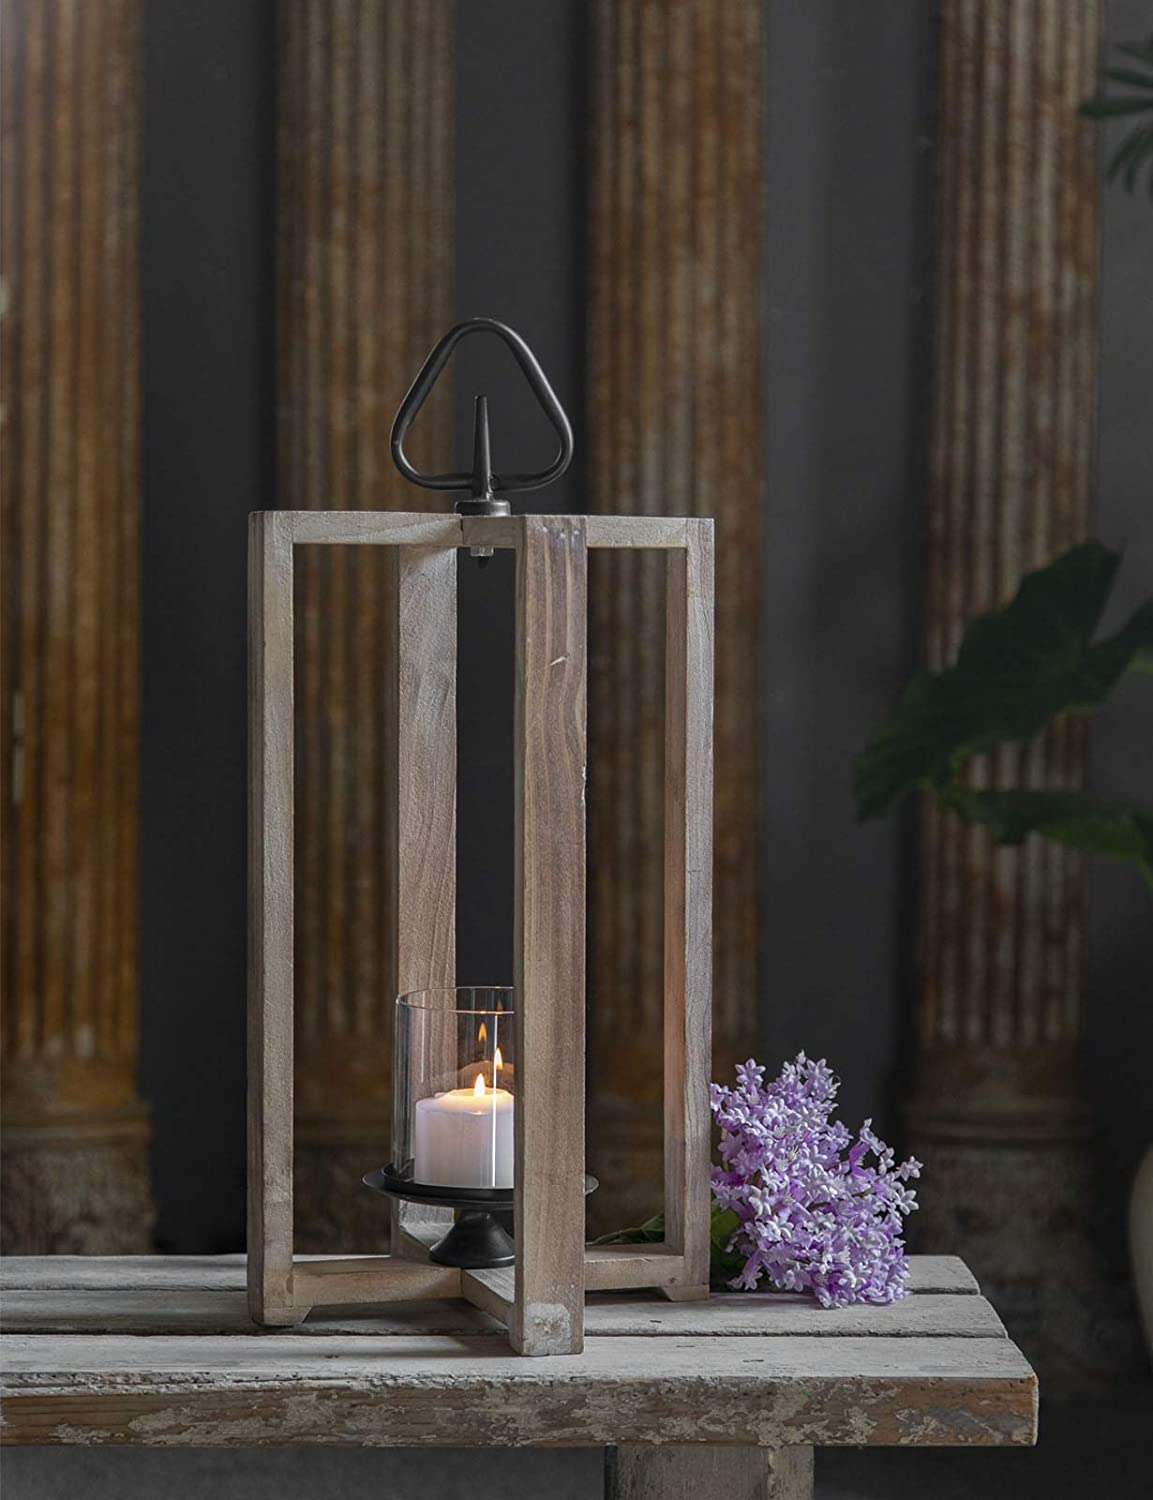 SOFE Wood free shipping Lantern Candle Holder Tall 70% OFF Outlet Hanging Rustic 25